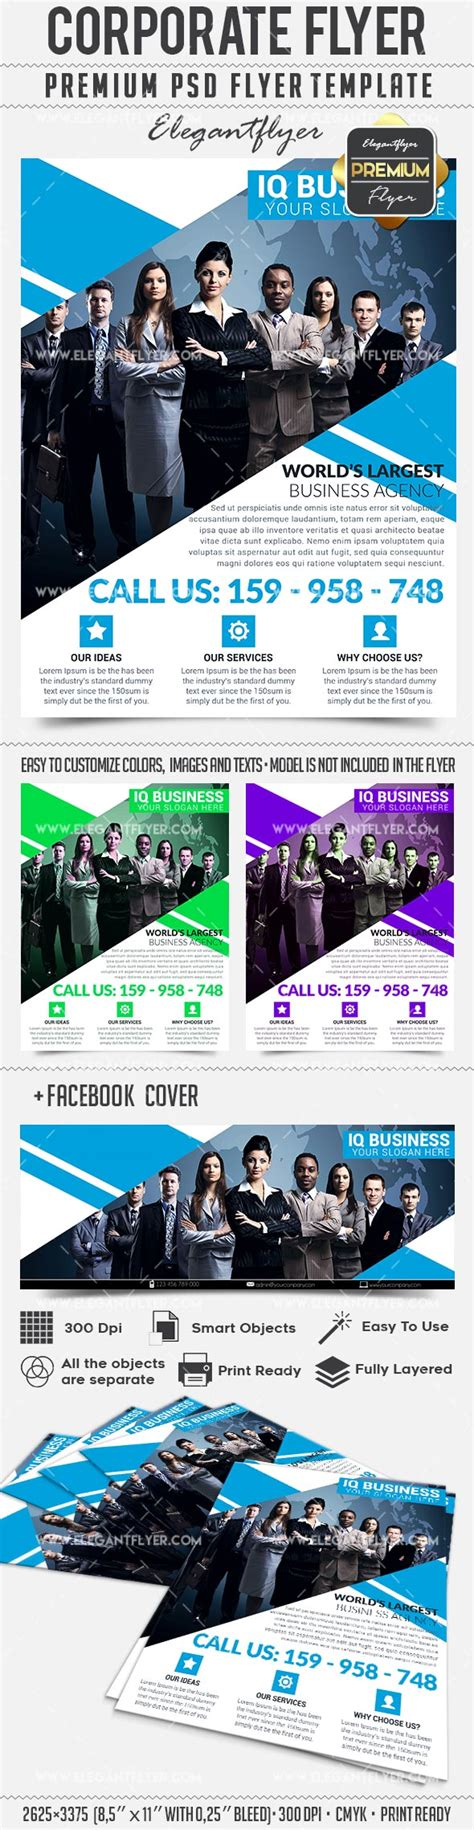 corporate flyer business flyer psd template facebook